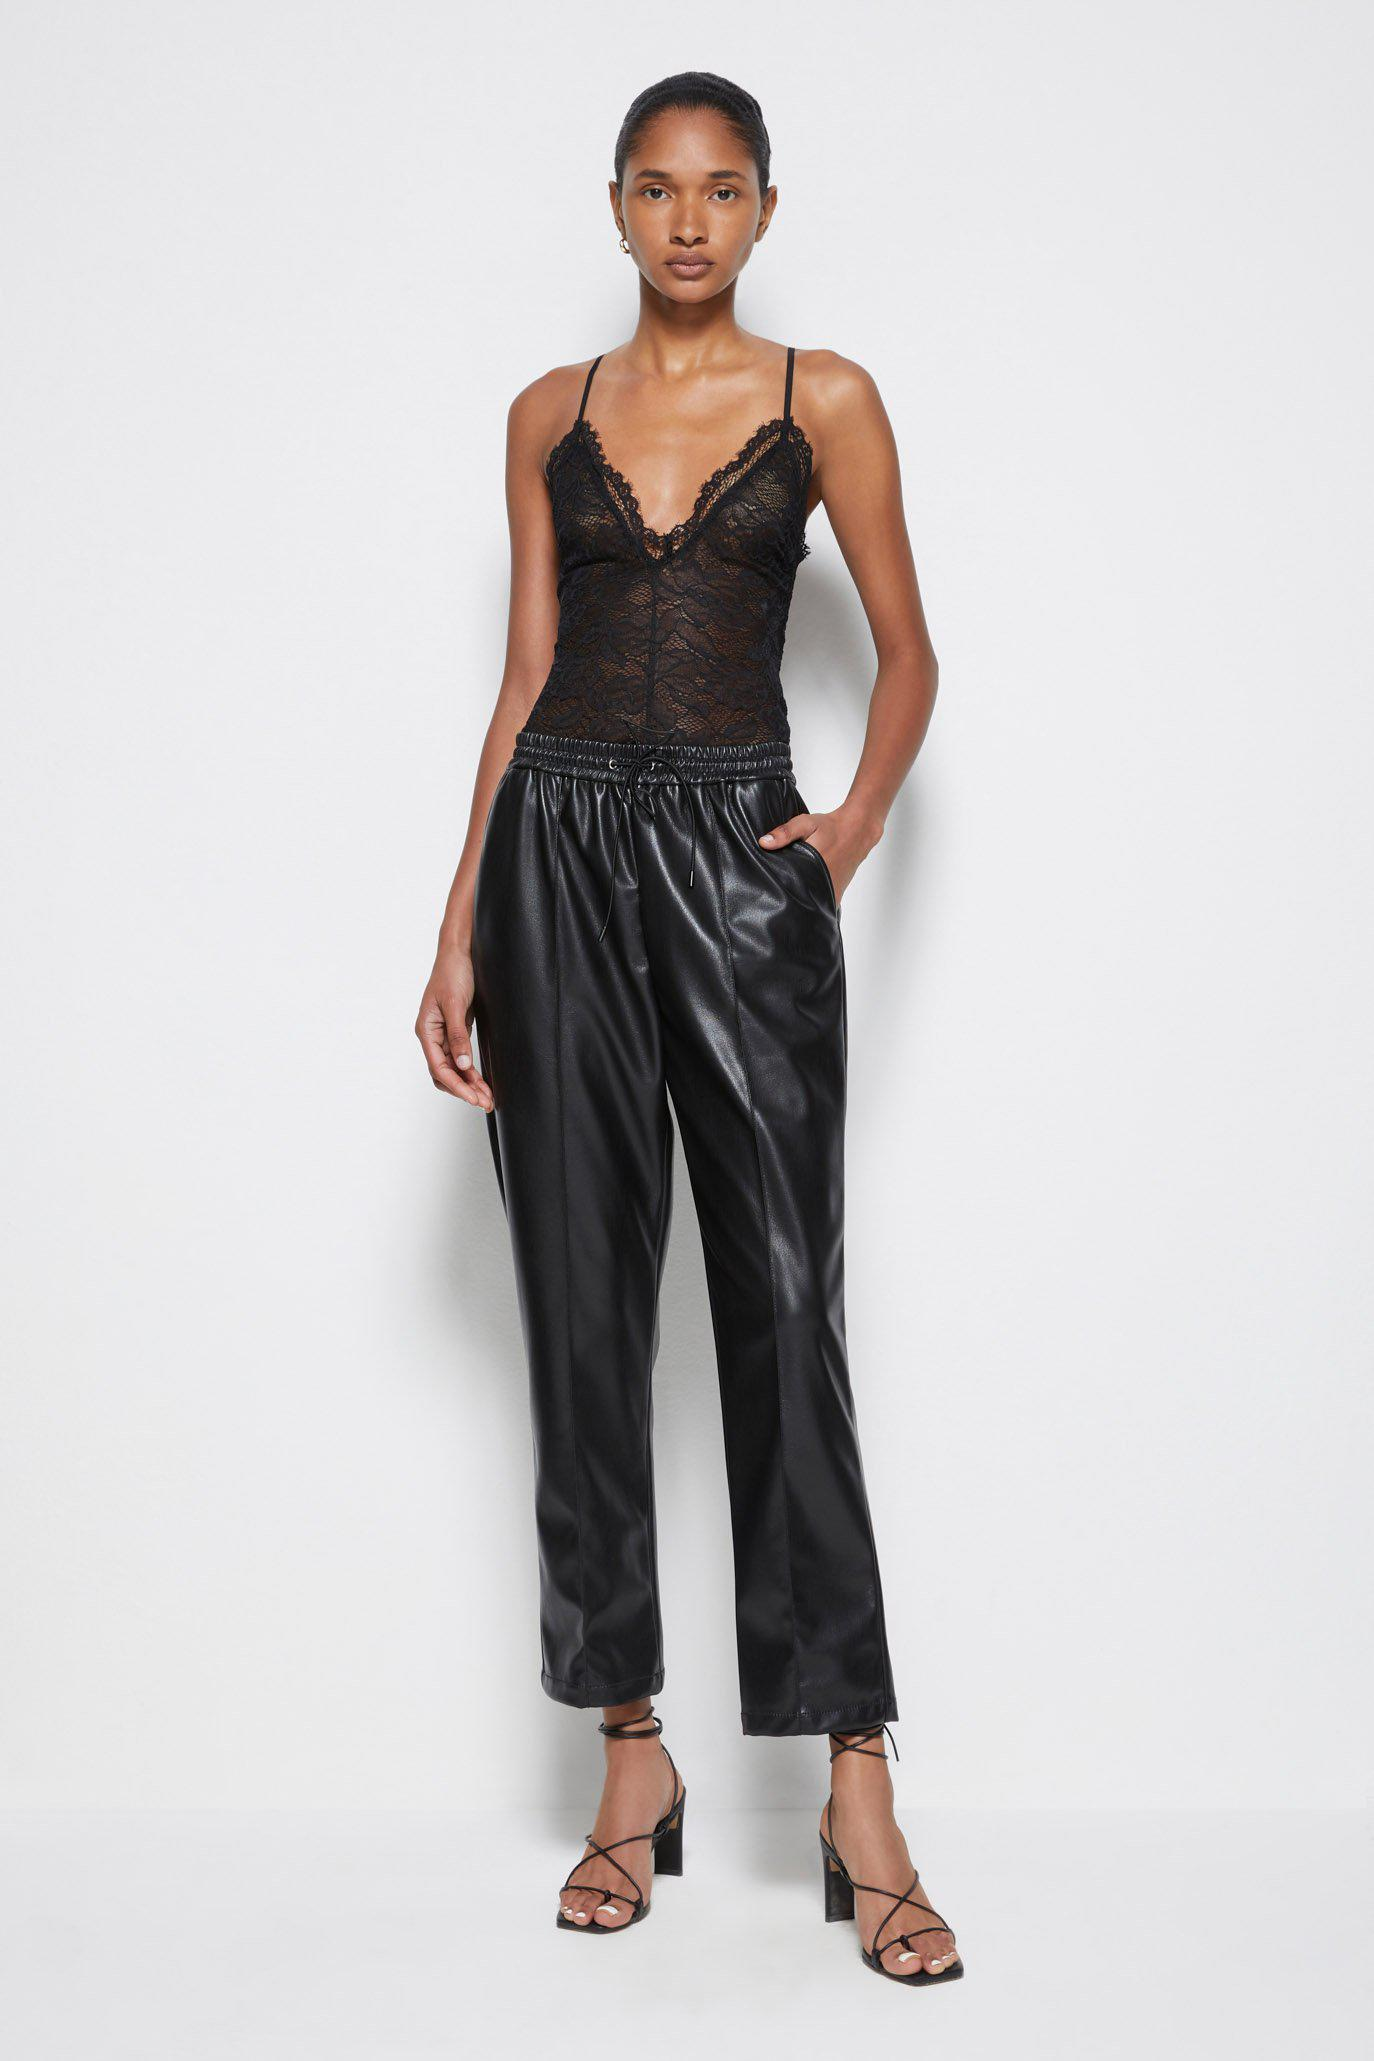 Stacey Recycled Lace Bodysuit 2